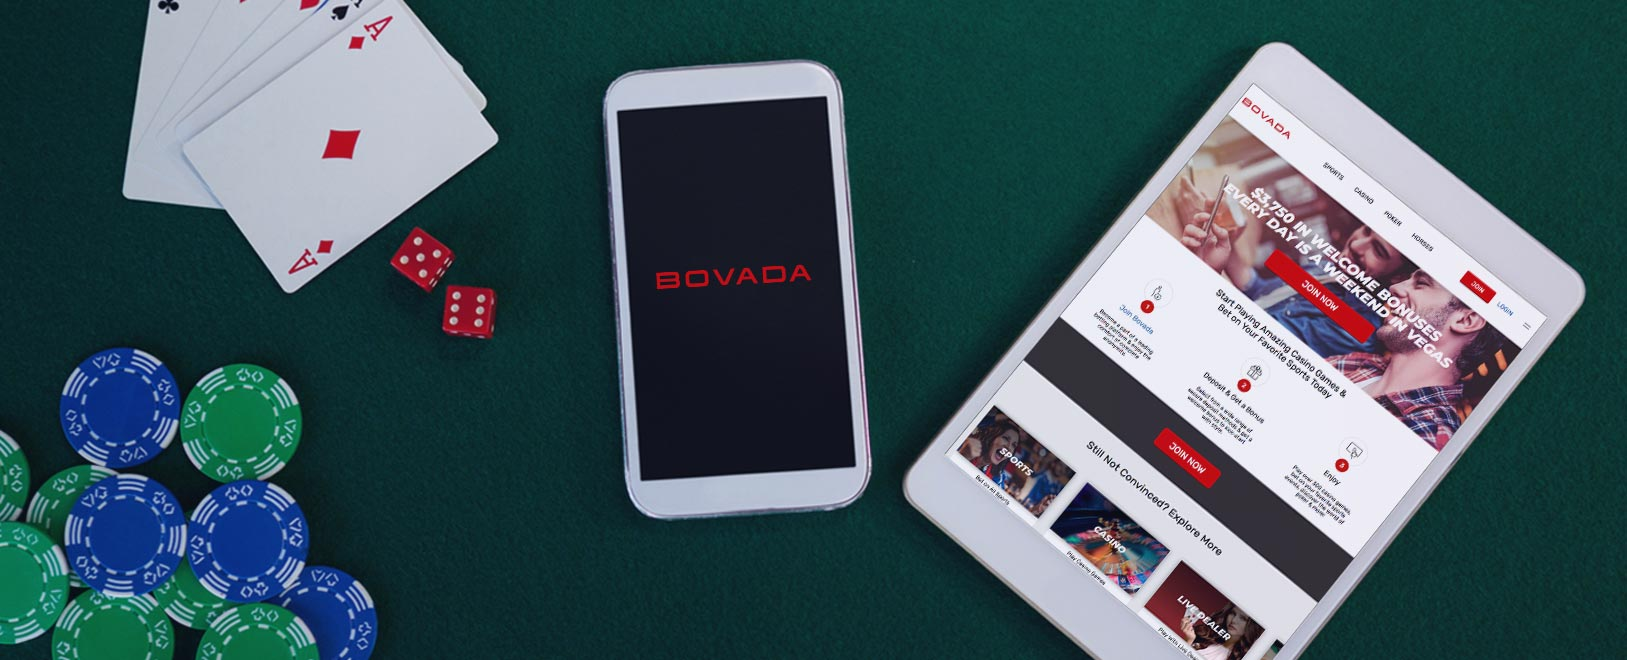 How to Play Casino Games From Your Mobile at Bovada